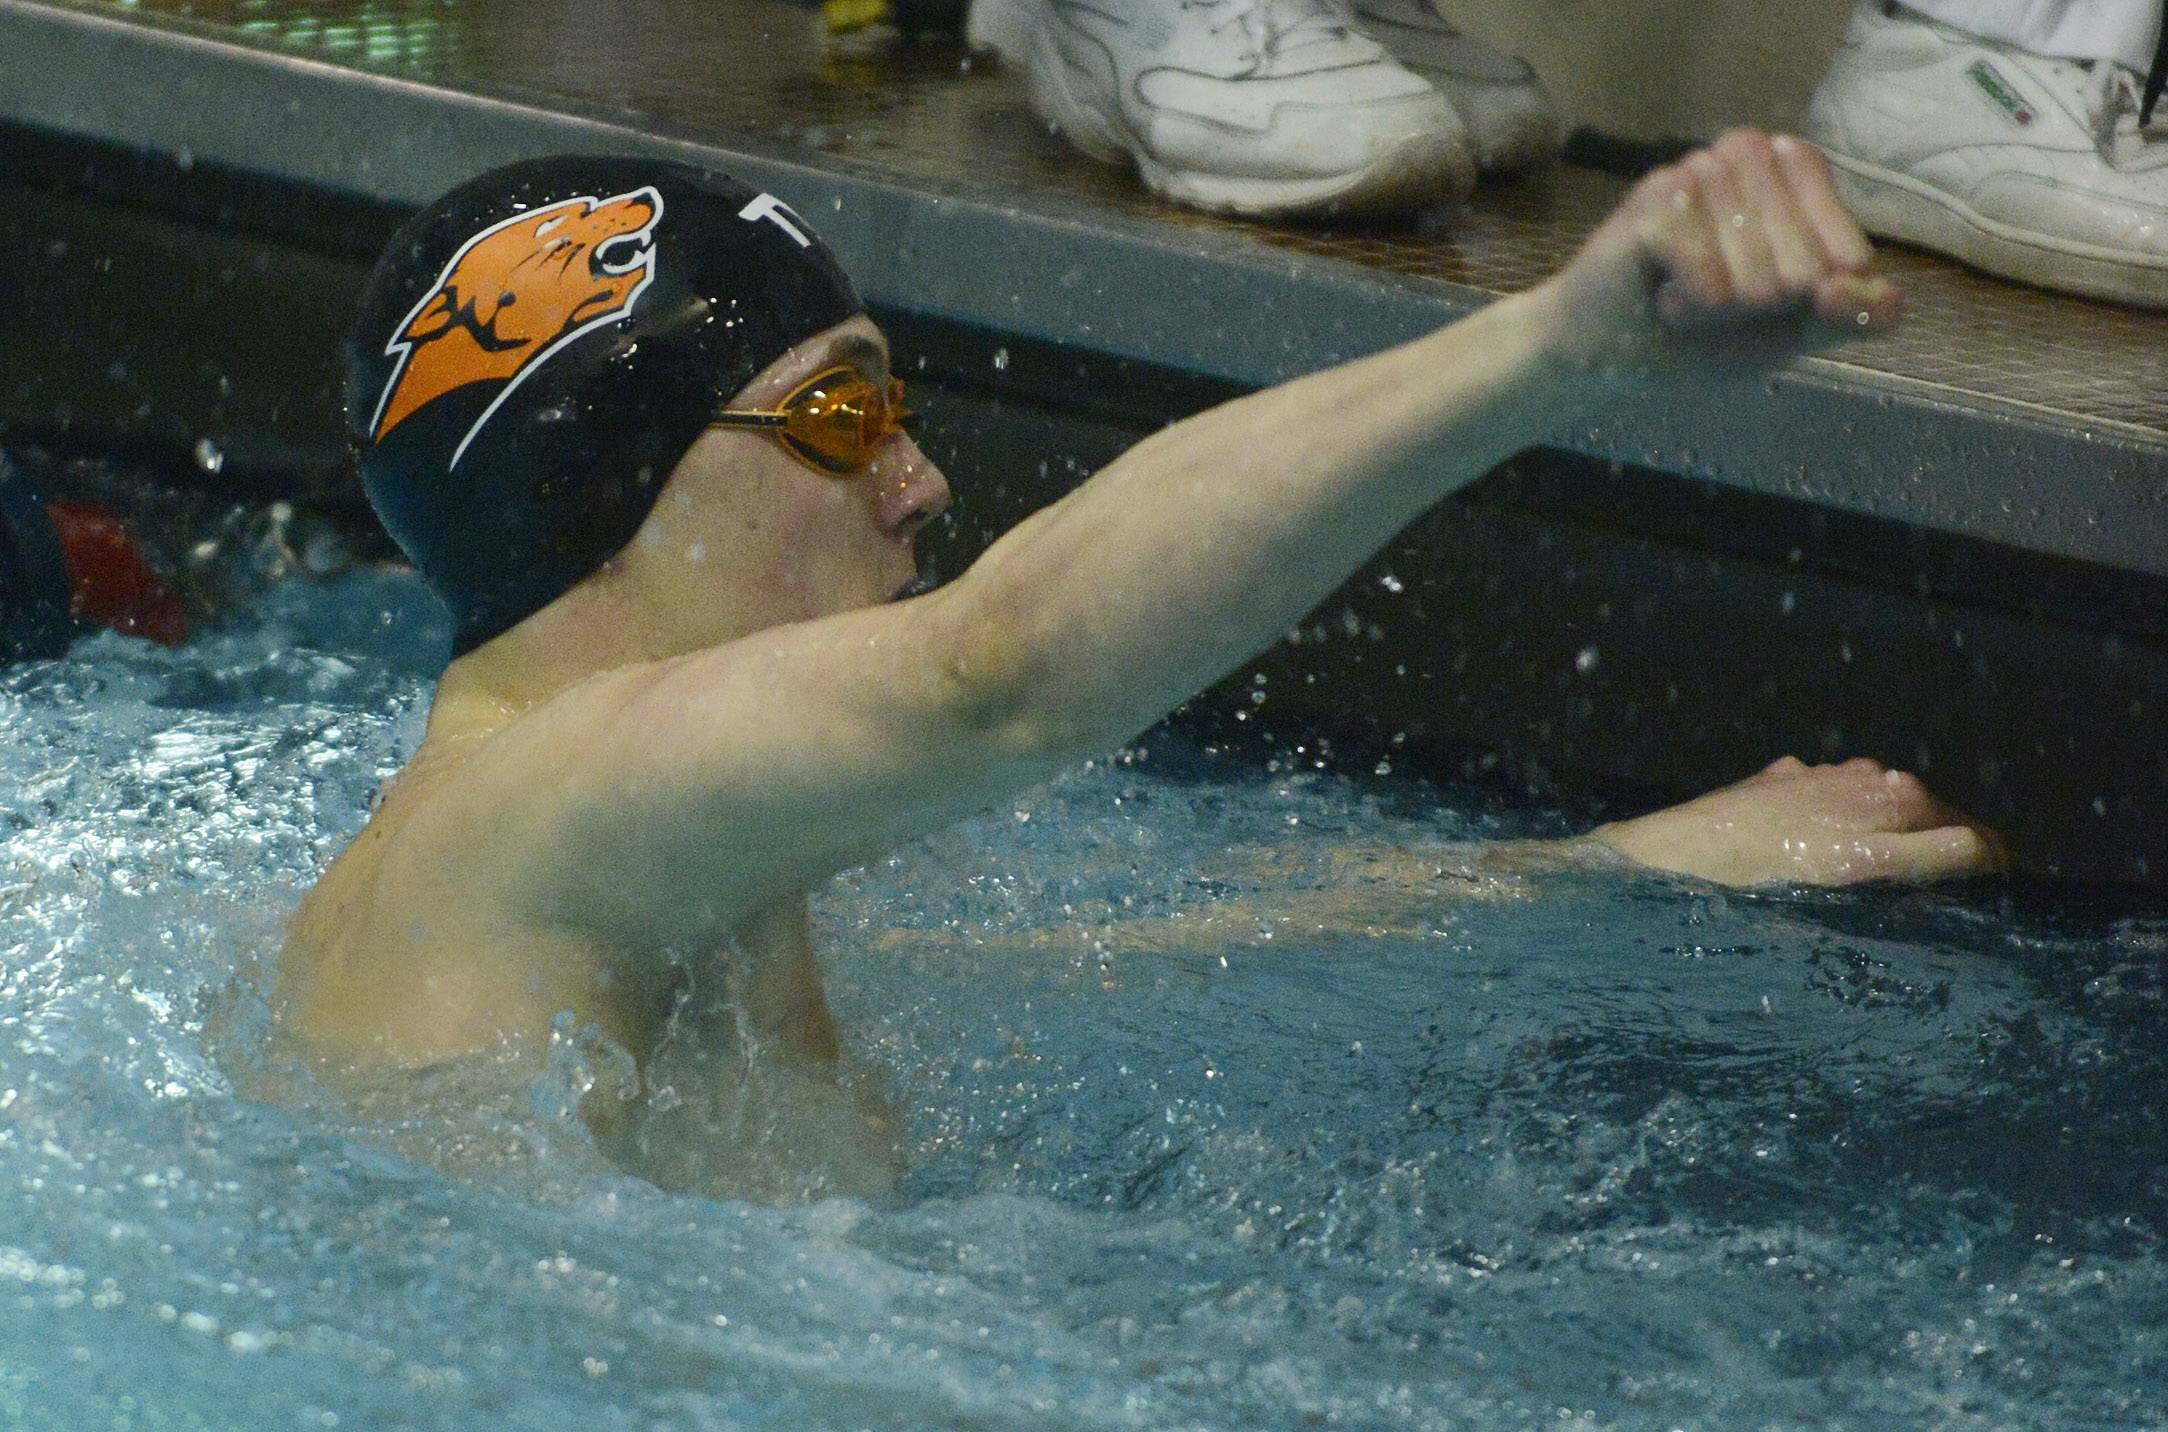 Justin Fu, Libertyville's anchor on the 200-yard medley relay, pumps his fist after his team's record-setting finish during the boys swimming state meet finals at Evanston High School on Saturday.